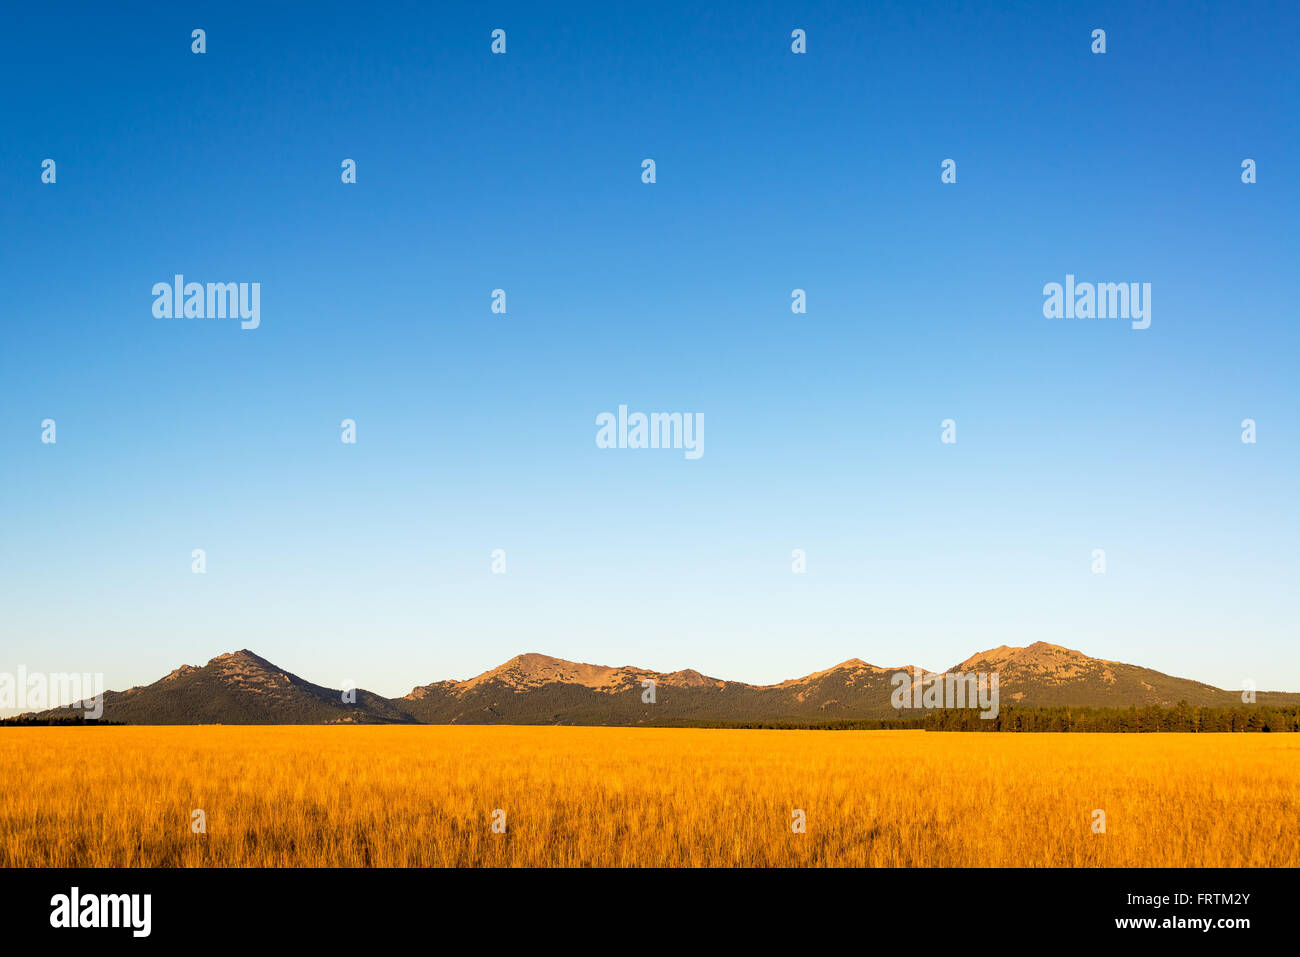 Bighorn Mountain Range in Wyoming bathed in the beautiful early morning light - Stock Image